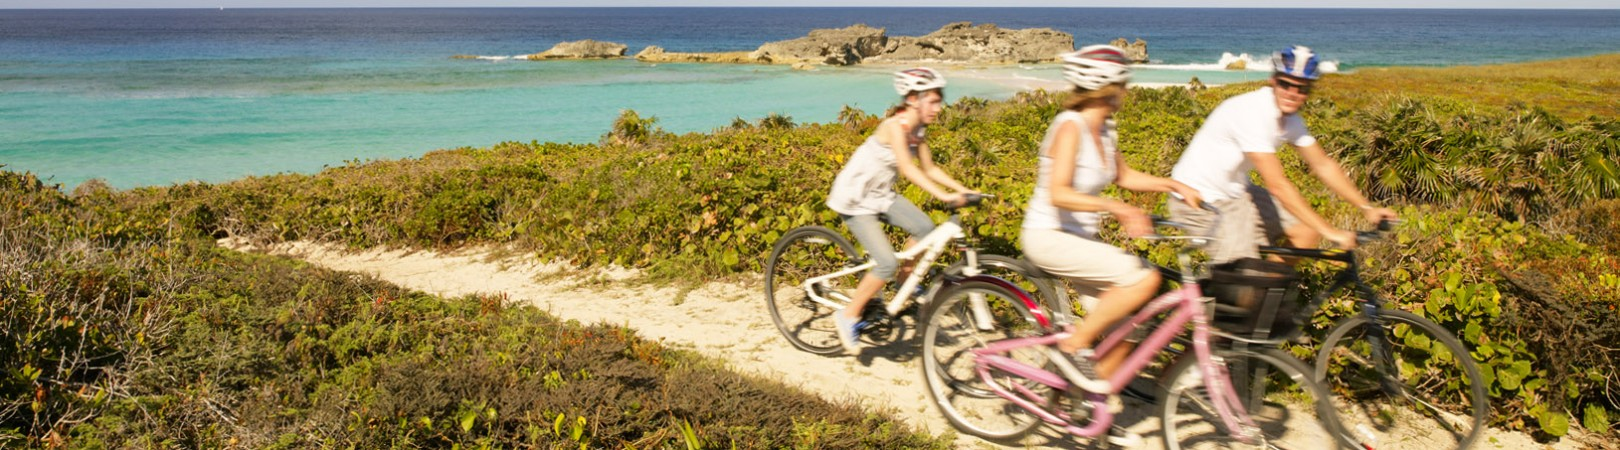 Turks-and-Caicos-Activities